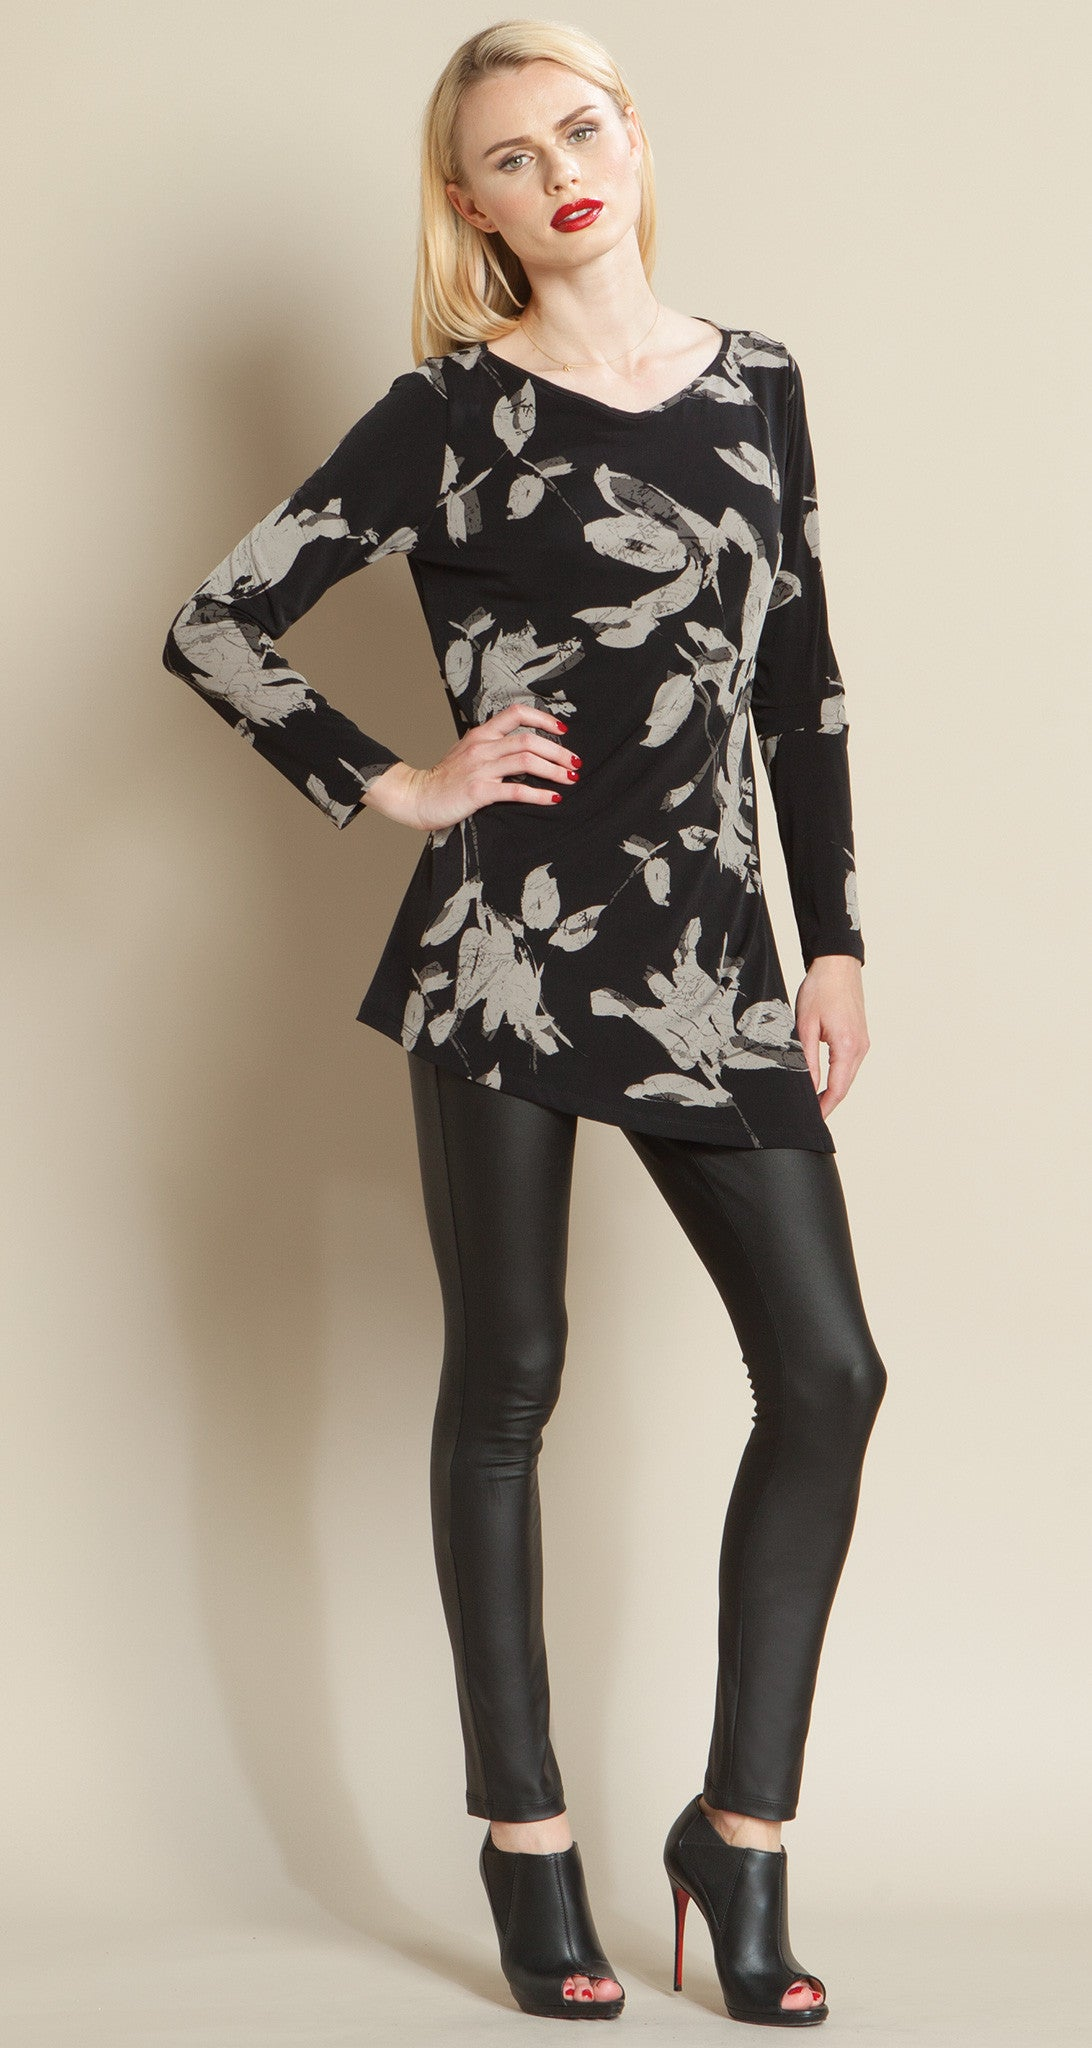 V Point Neck Print Tunic - Clara Sunwoo